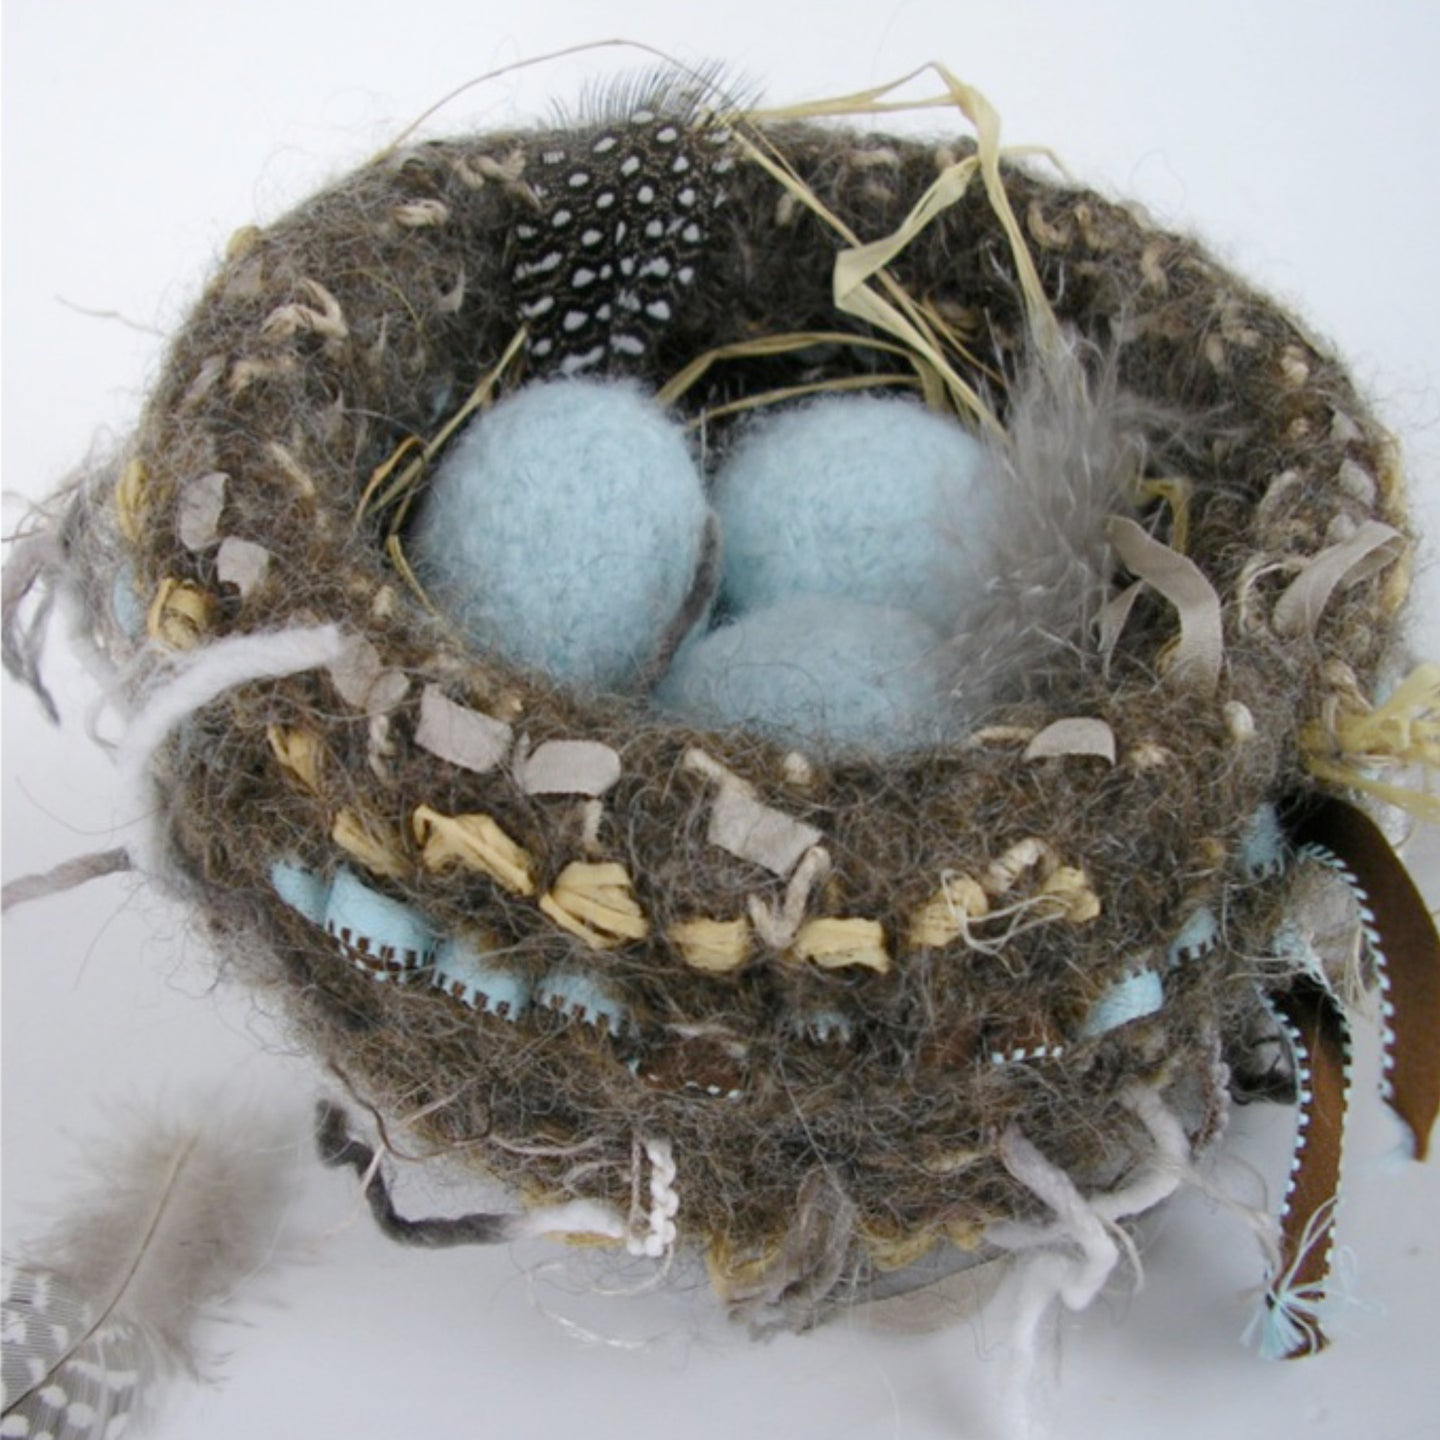 Marie Mayhew's nest & eggs pattern